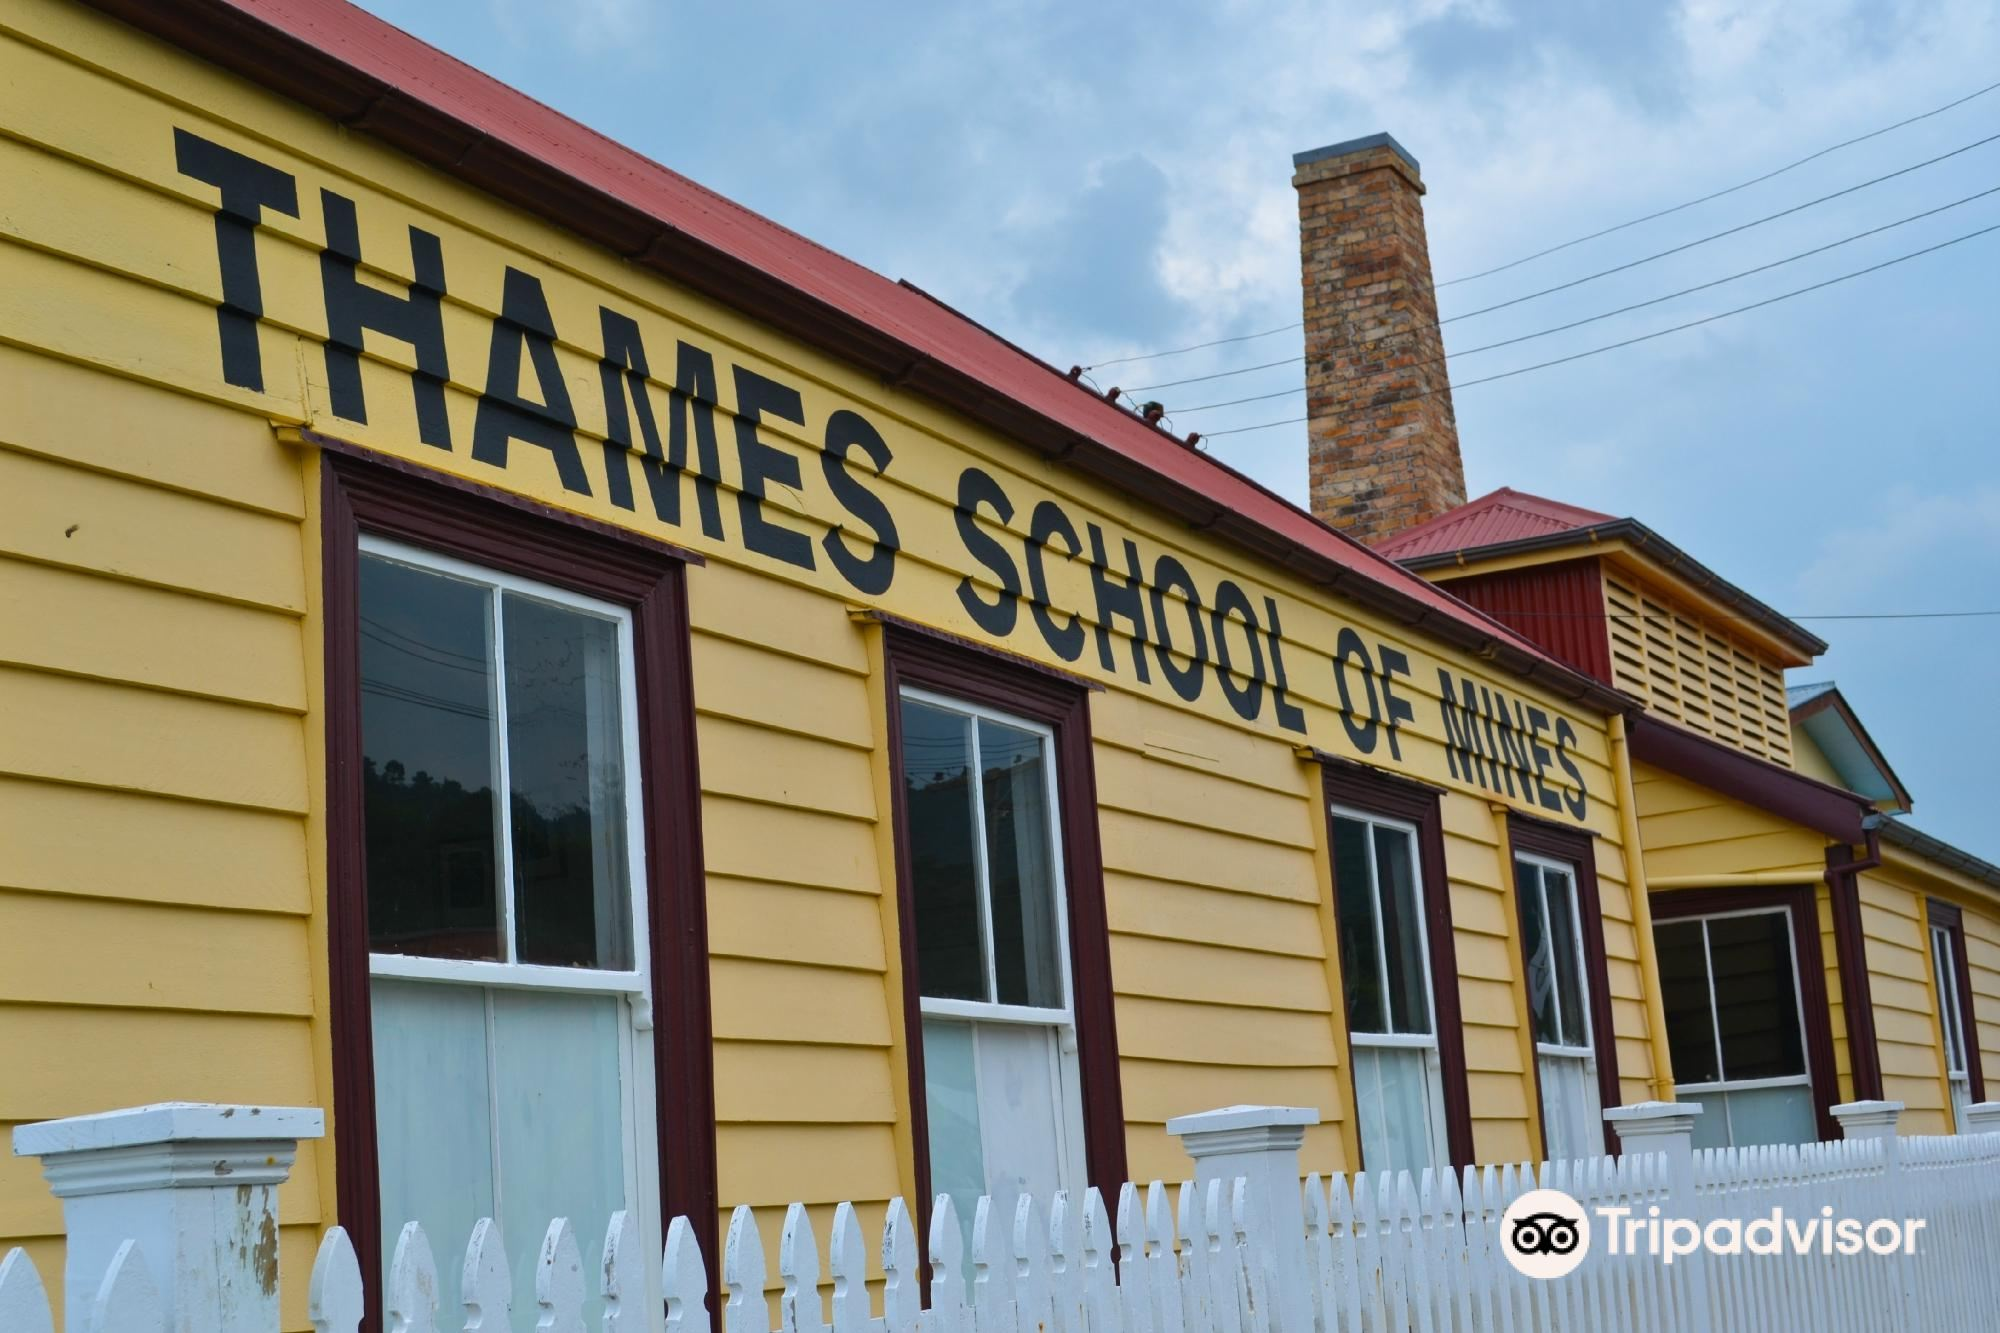 Thames School of Mines and Mineralogical Museum